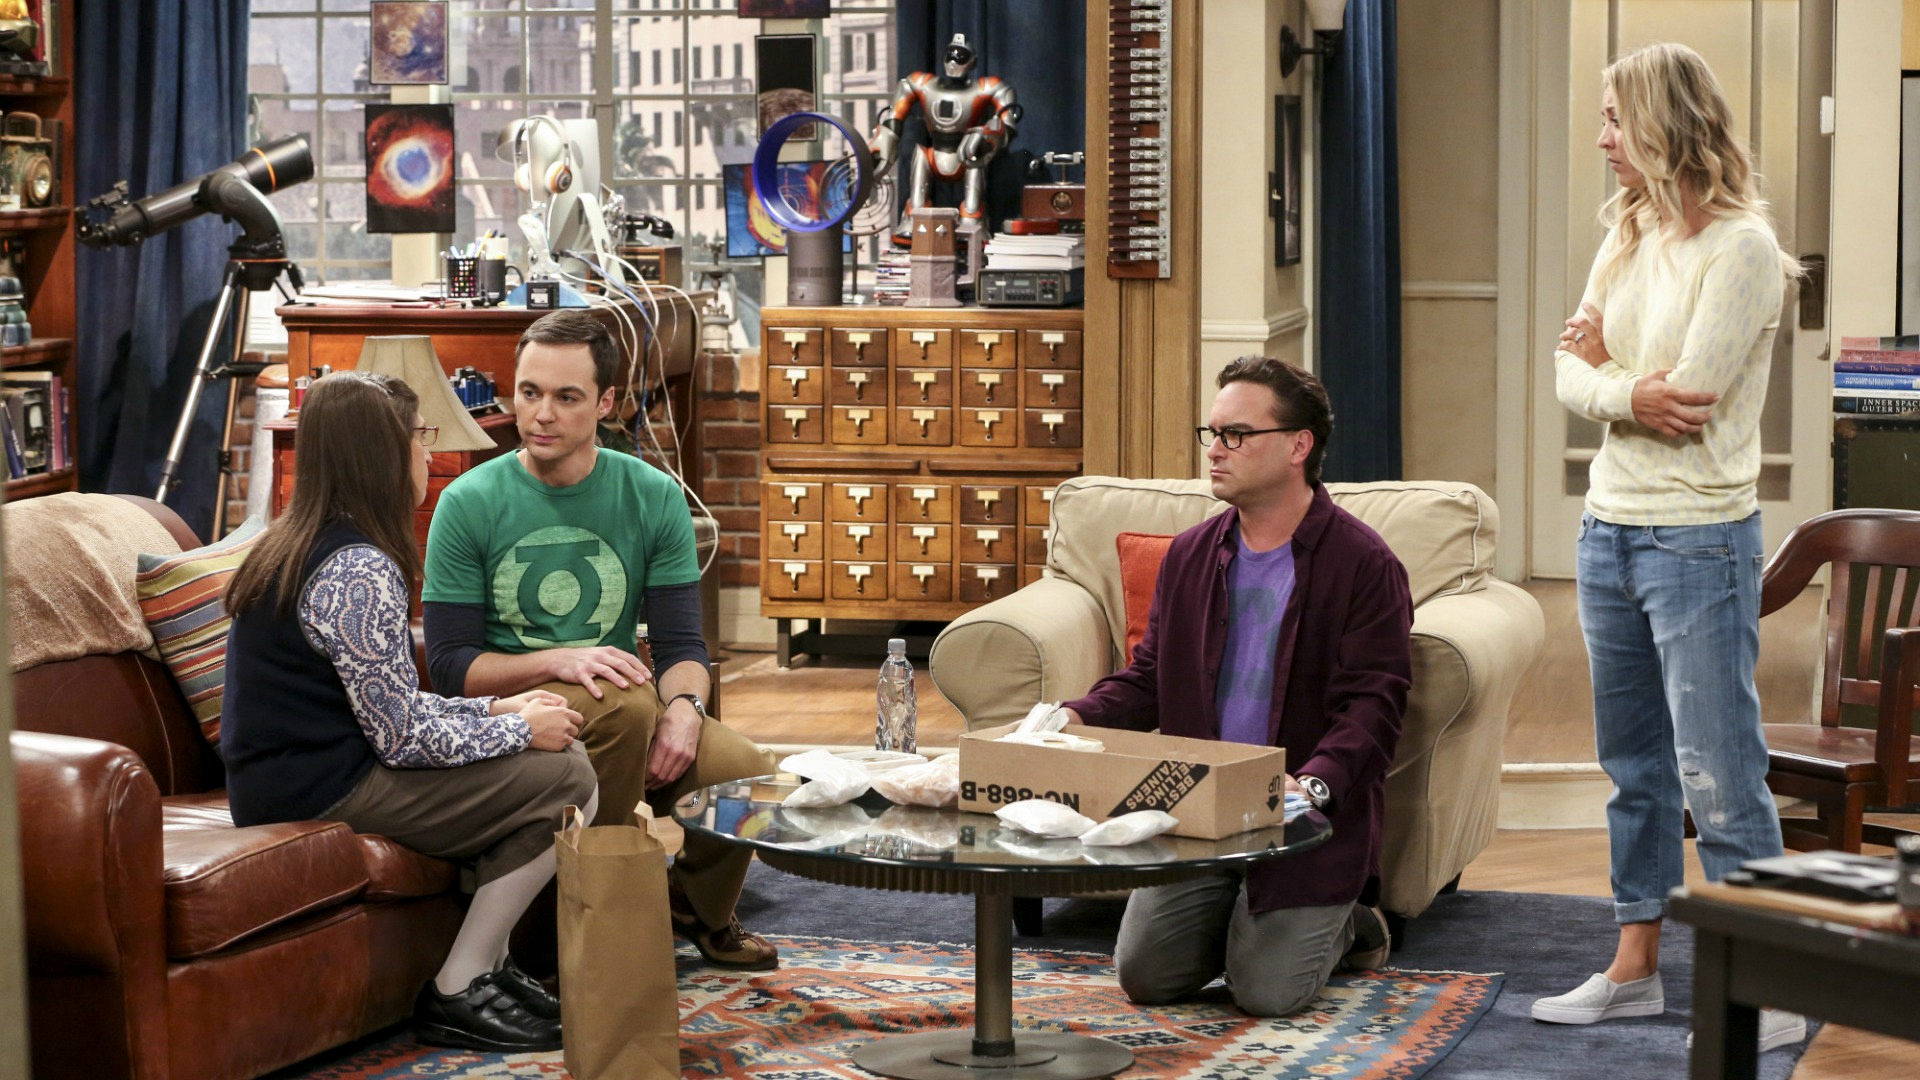 Leonard and Penny watch as Sheldon and Amy discuss a dicey topic.